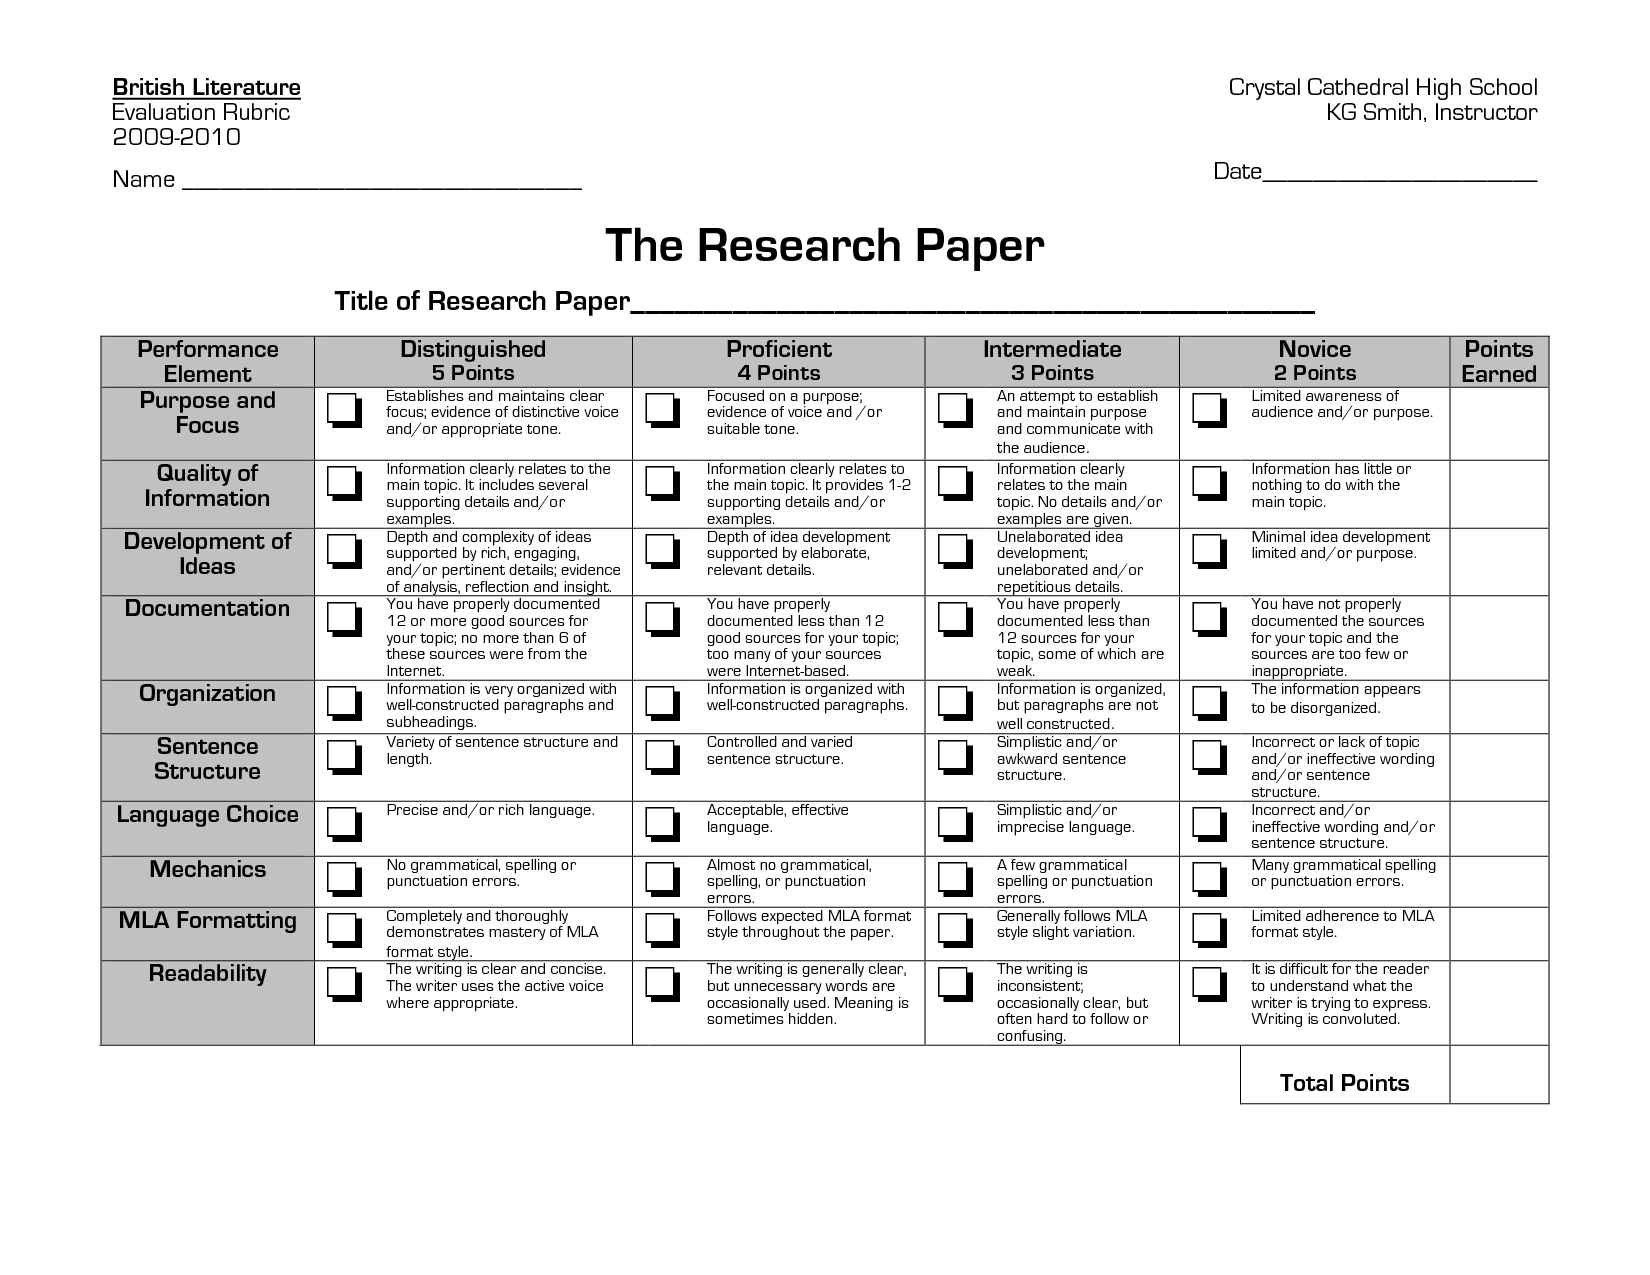 017 Research Paper Rubric High School Impressive Papers Assignment Sheet Topics Pdf Full